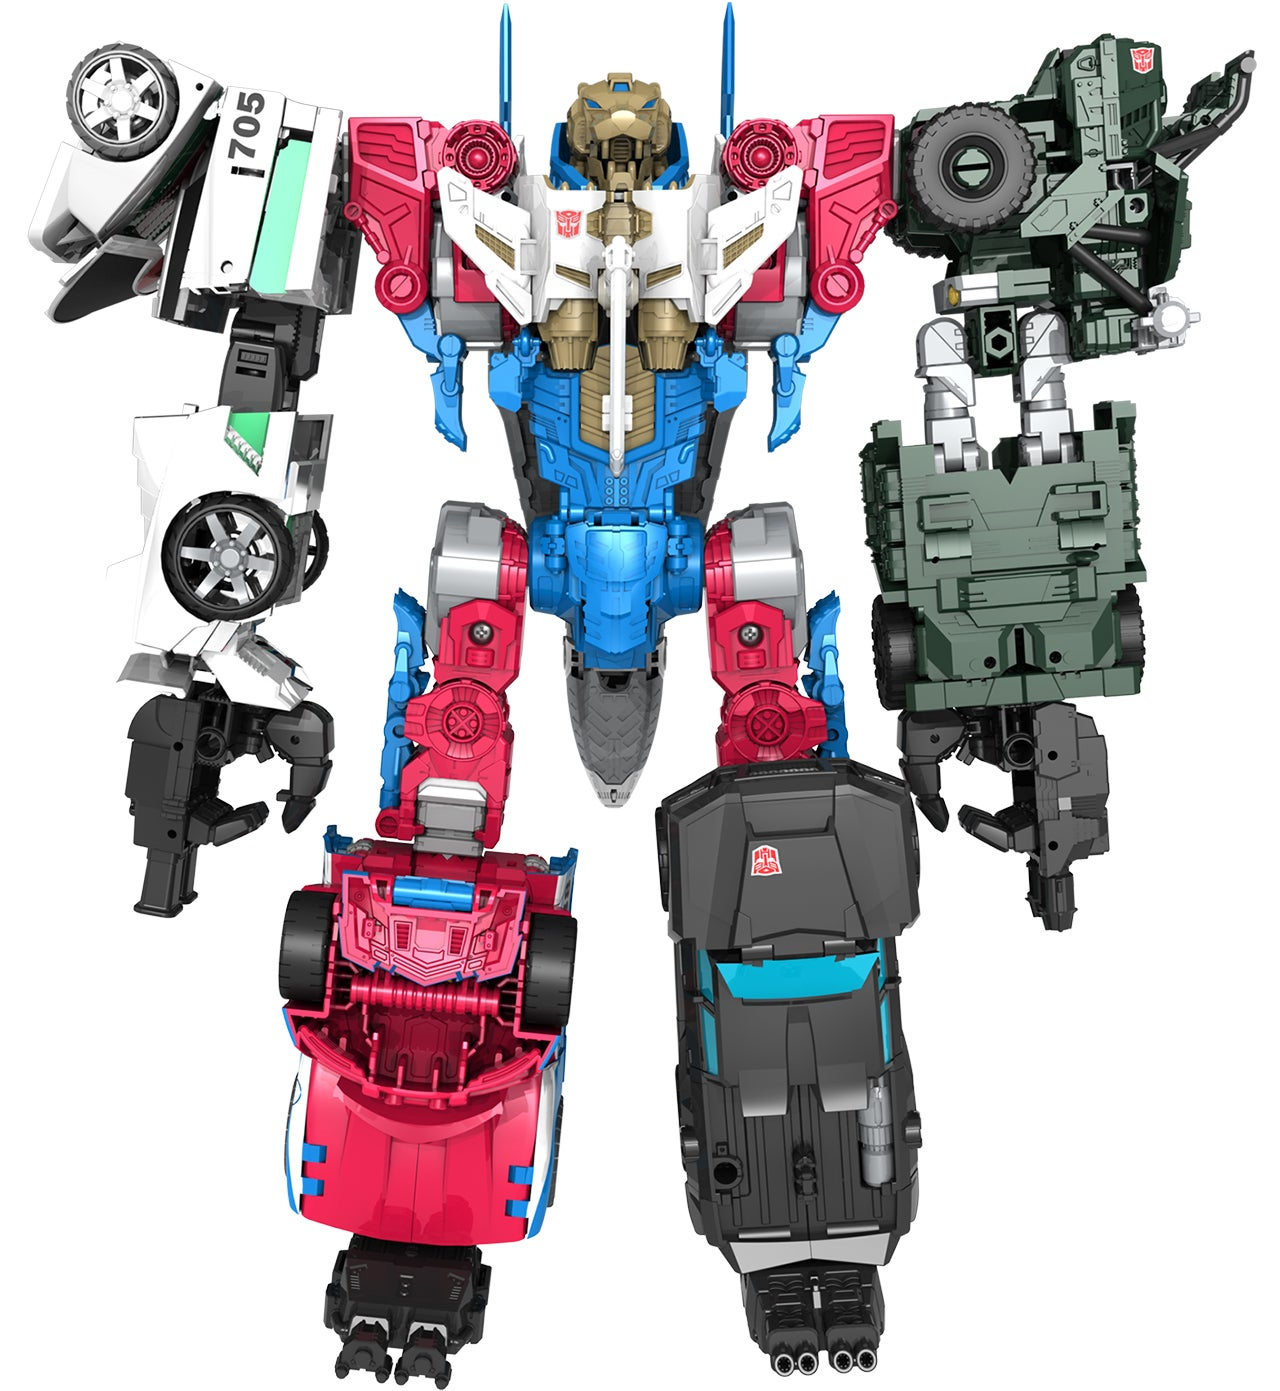 Hasbro's Bringing Back Skylynx As a Transformers Combiner